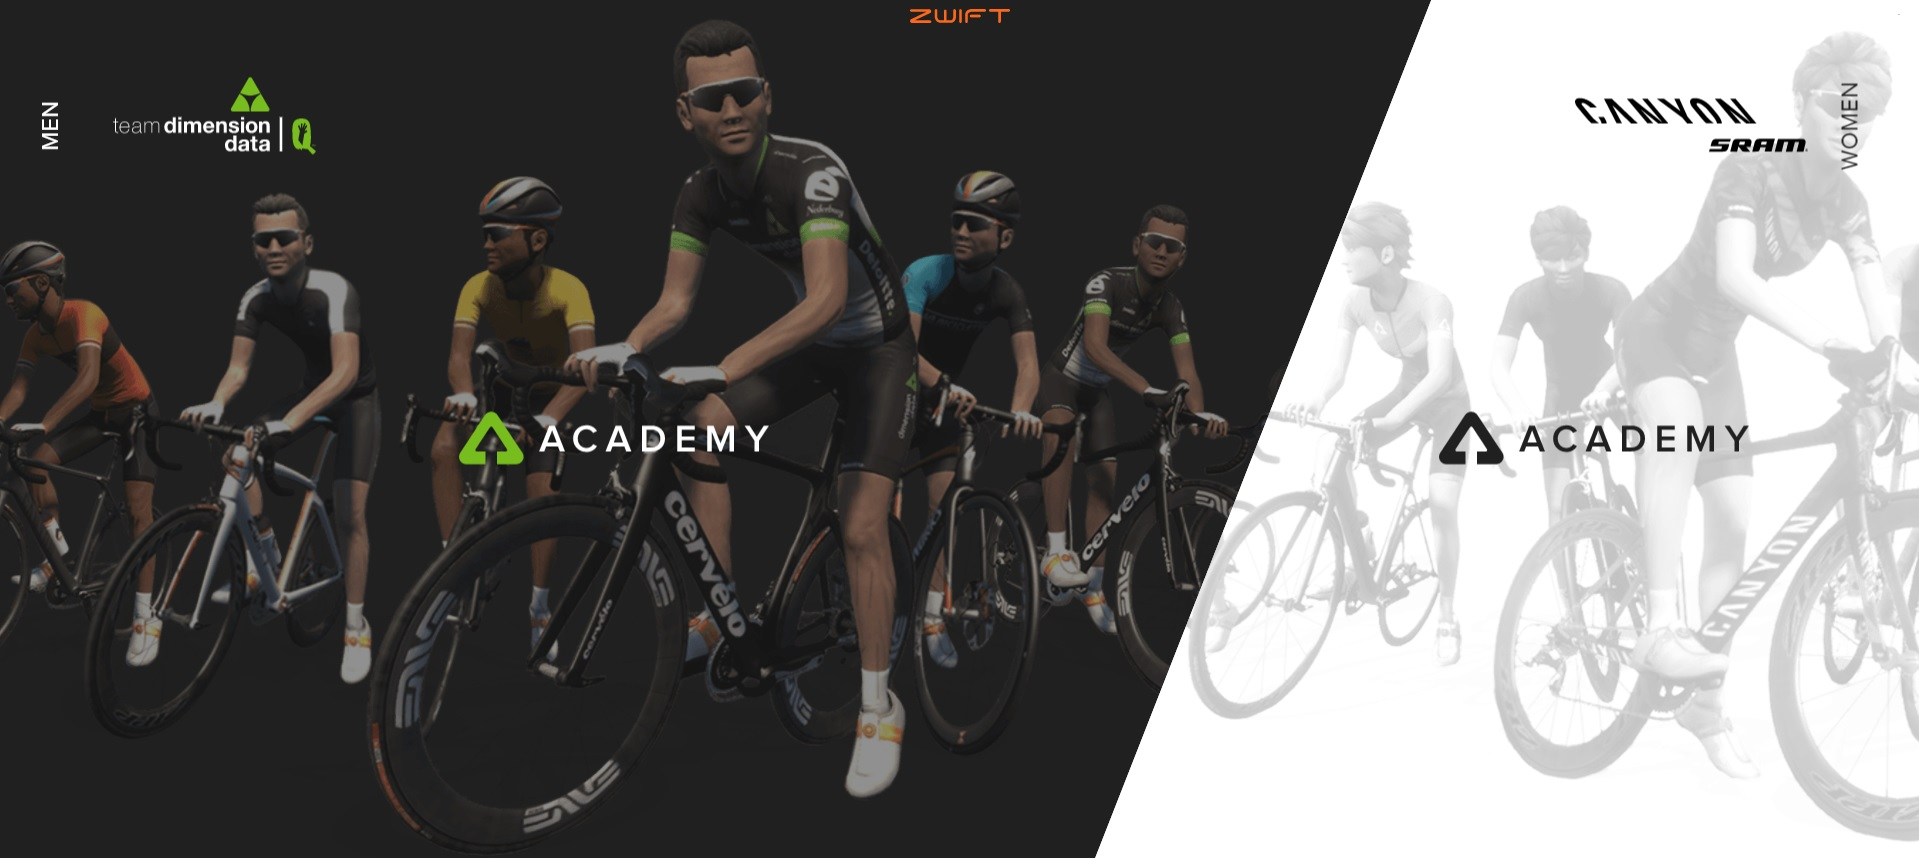 Zwift Academy 2017 – All signed up and ready to roll